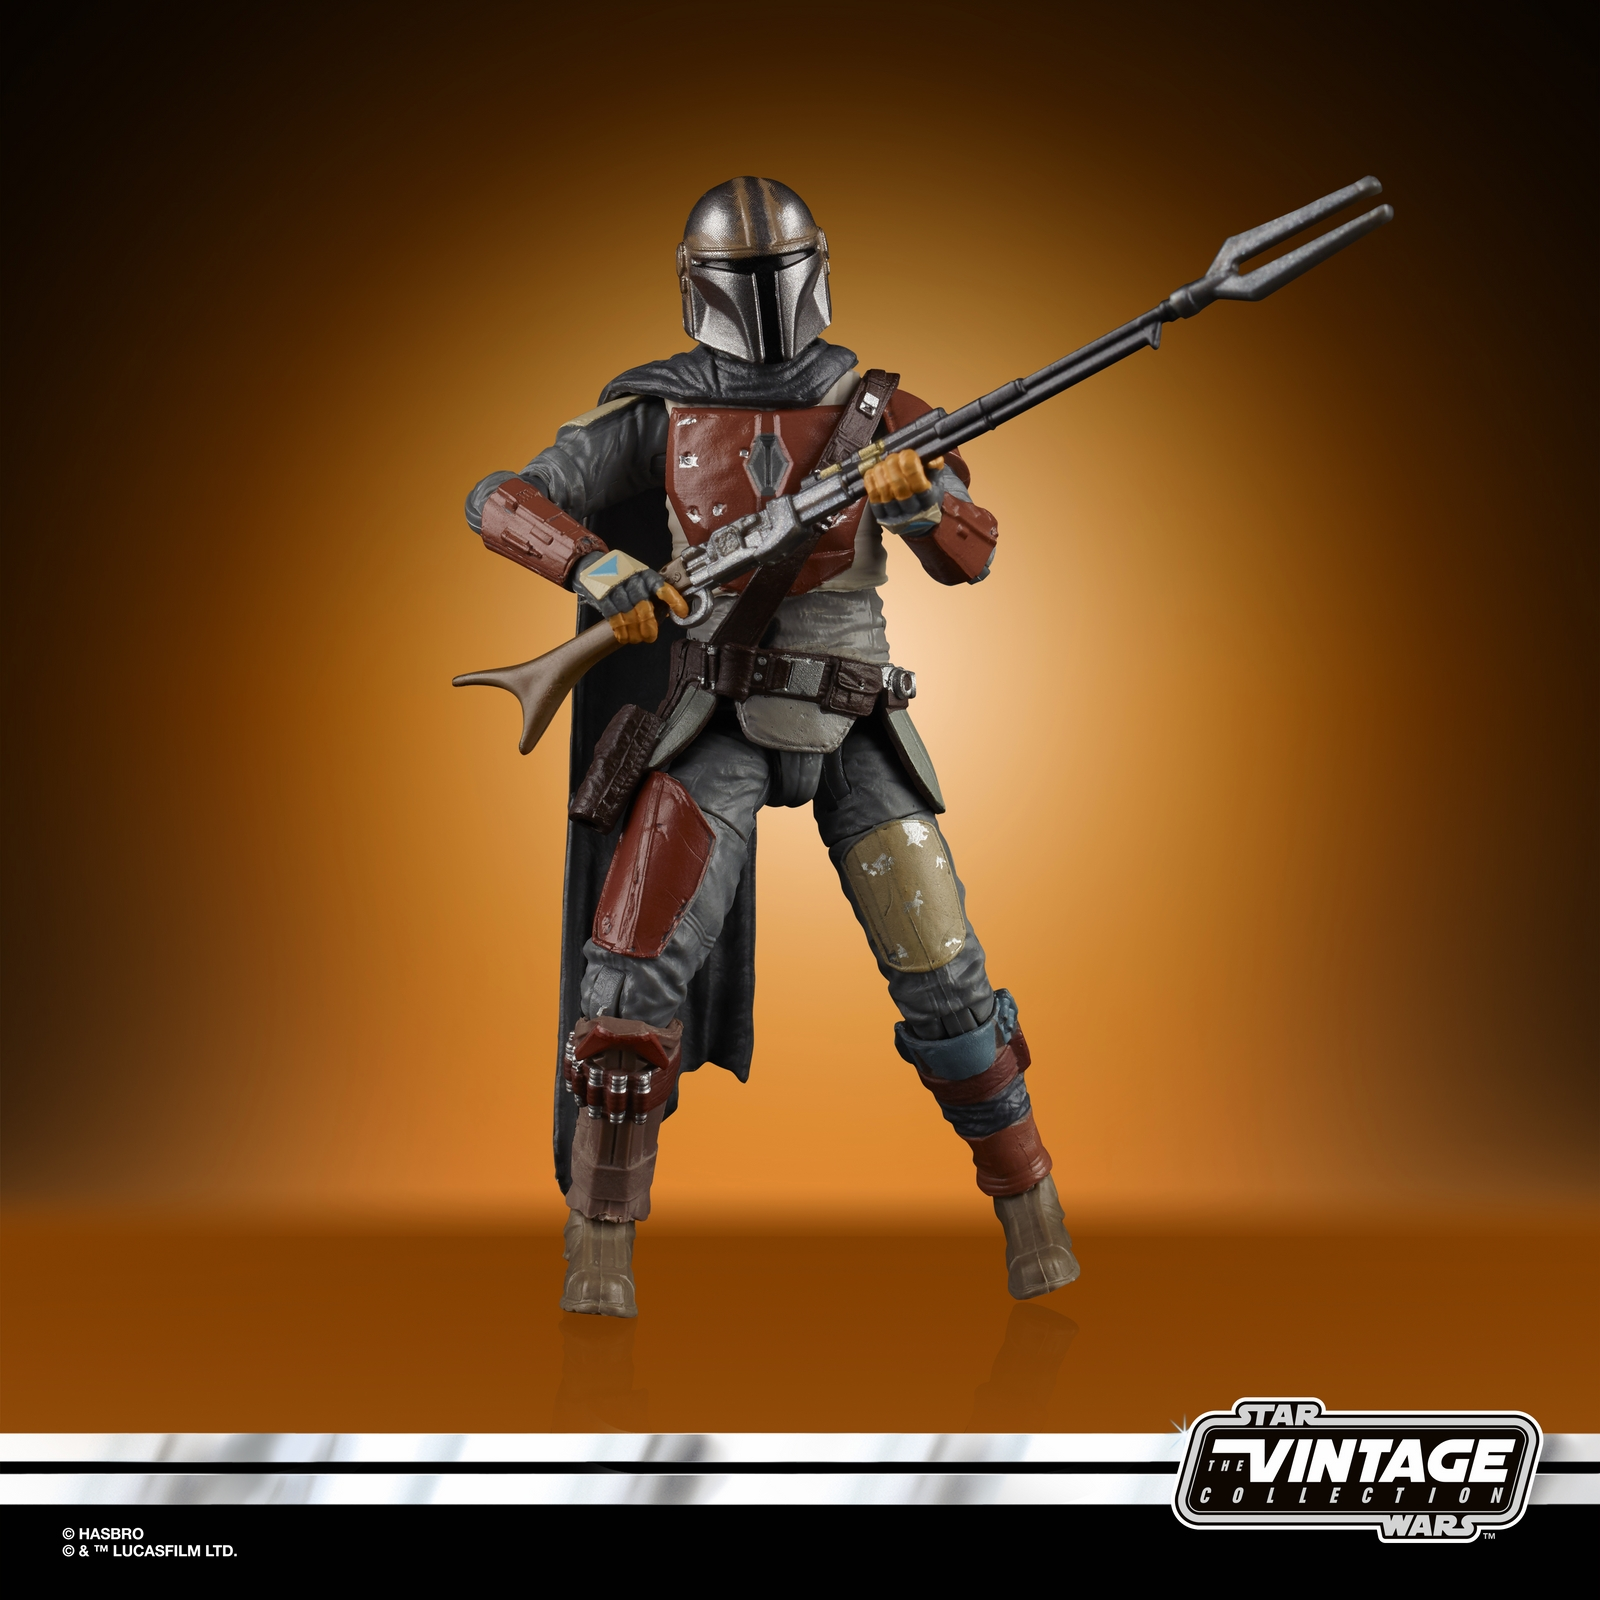 STAR%20WARS%20THE%20VINTAGE%20COLLECTION%203.75-INCH%20THE%20MANDALORIAN%20Figure%20-%20oop(2).jpg